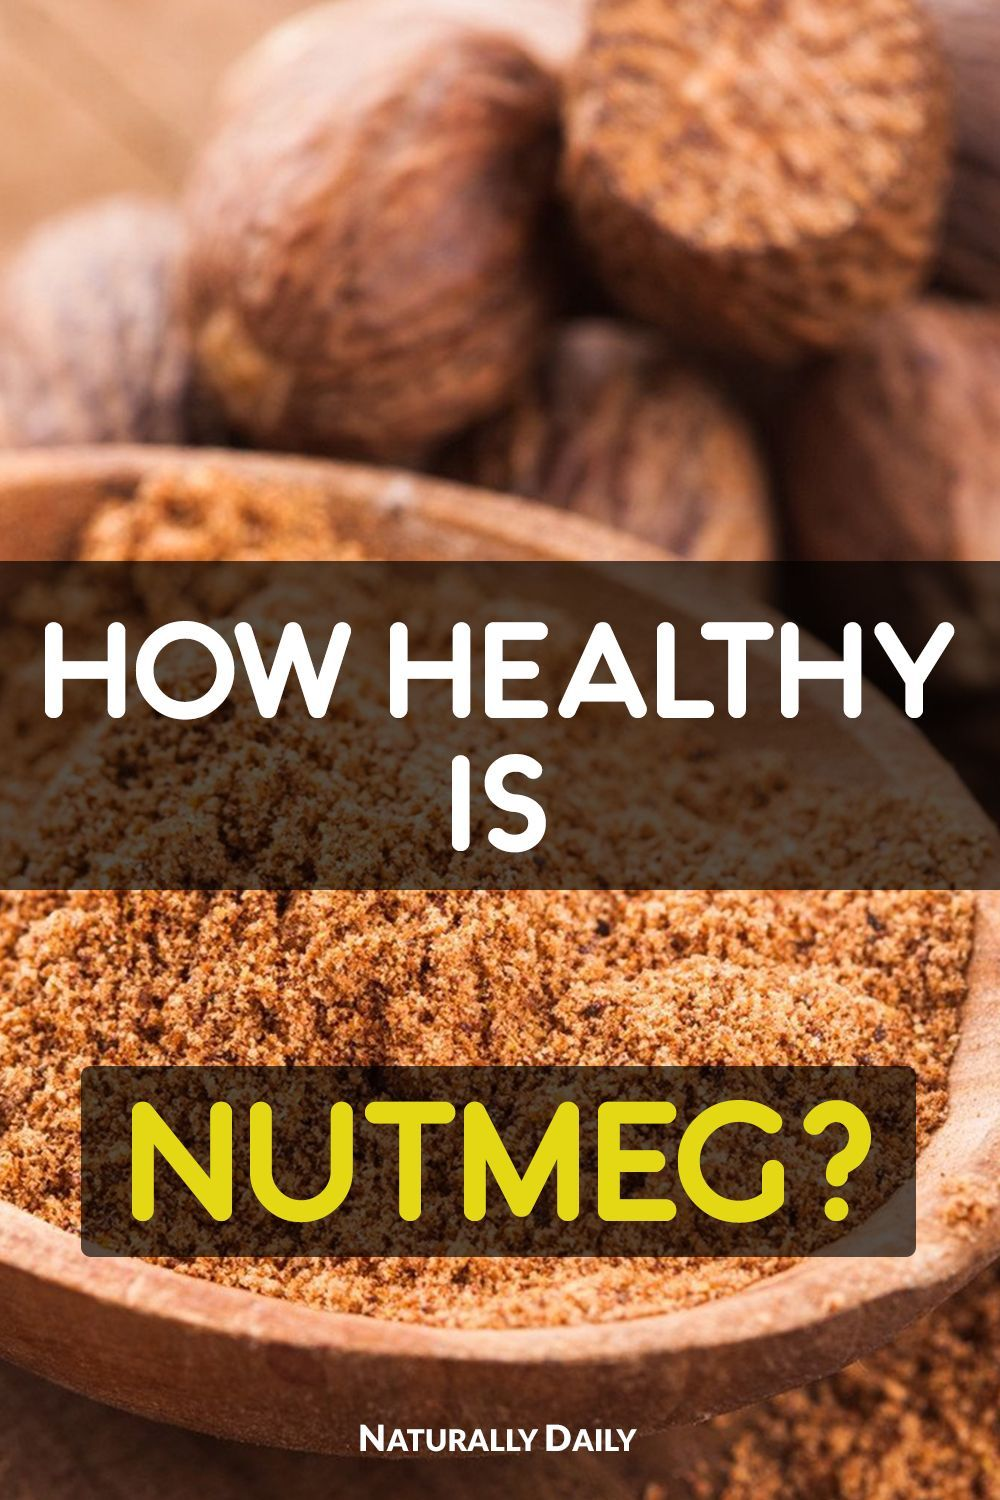 Health Benefits of Nutmeg You Need to Know 11 Health Benefits of Nutmeg You Need to Know| Nutmeg is one simple spice that can help you look great and stay fit. It has been an Ayurvedic treatment for decades in these islands. You can use it as both nutmeg powder and nutmeg spice according to your preference.11 Health Benefits of Nutmeg You Need to Know| Nutm...